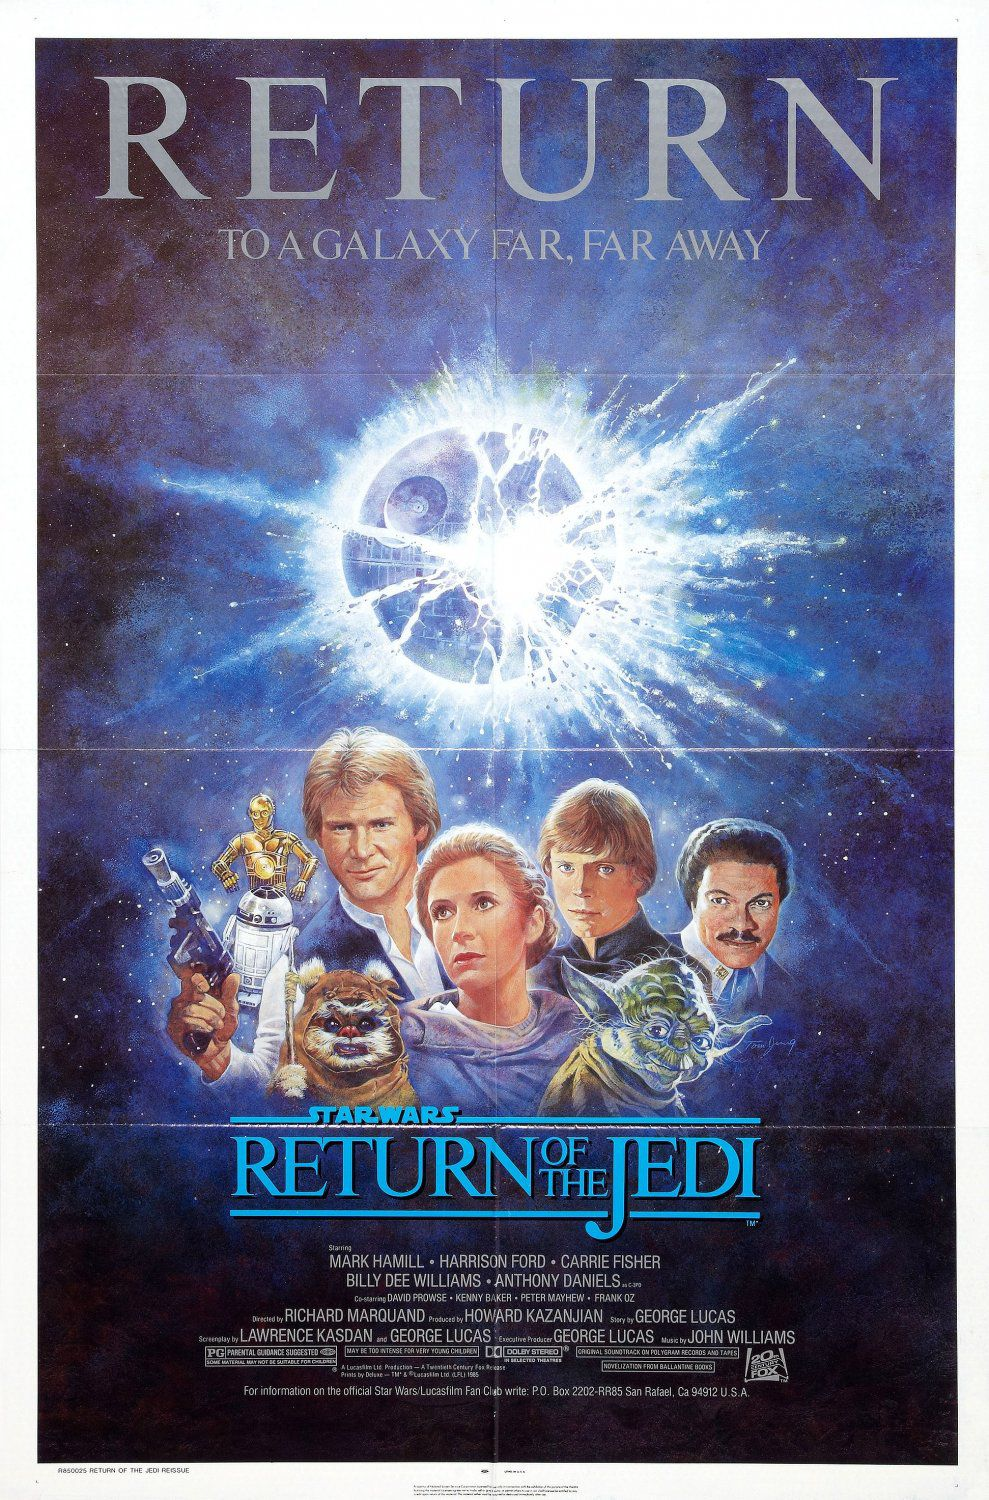 Star Wars - Return of the Jedi - film poster